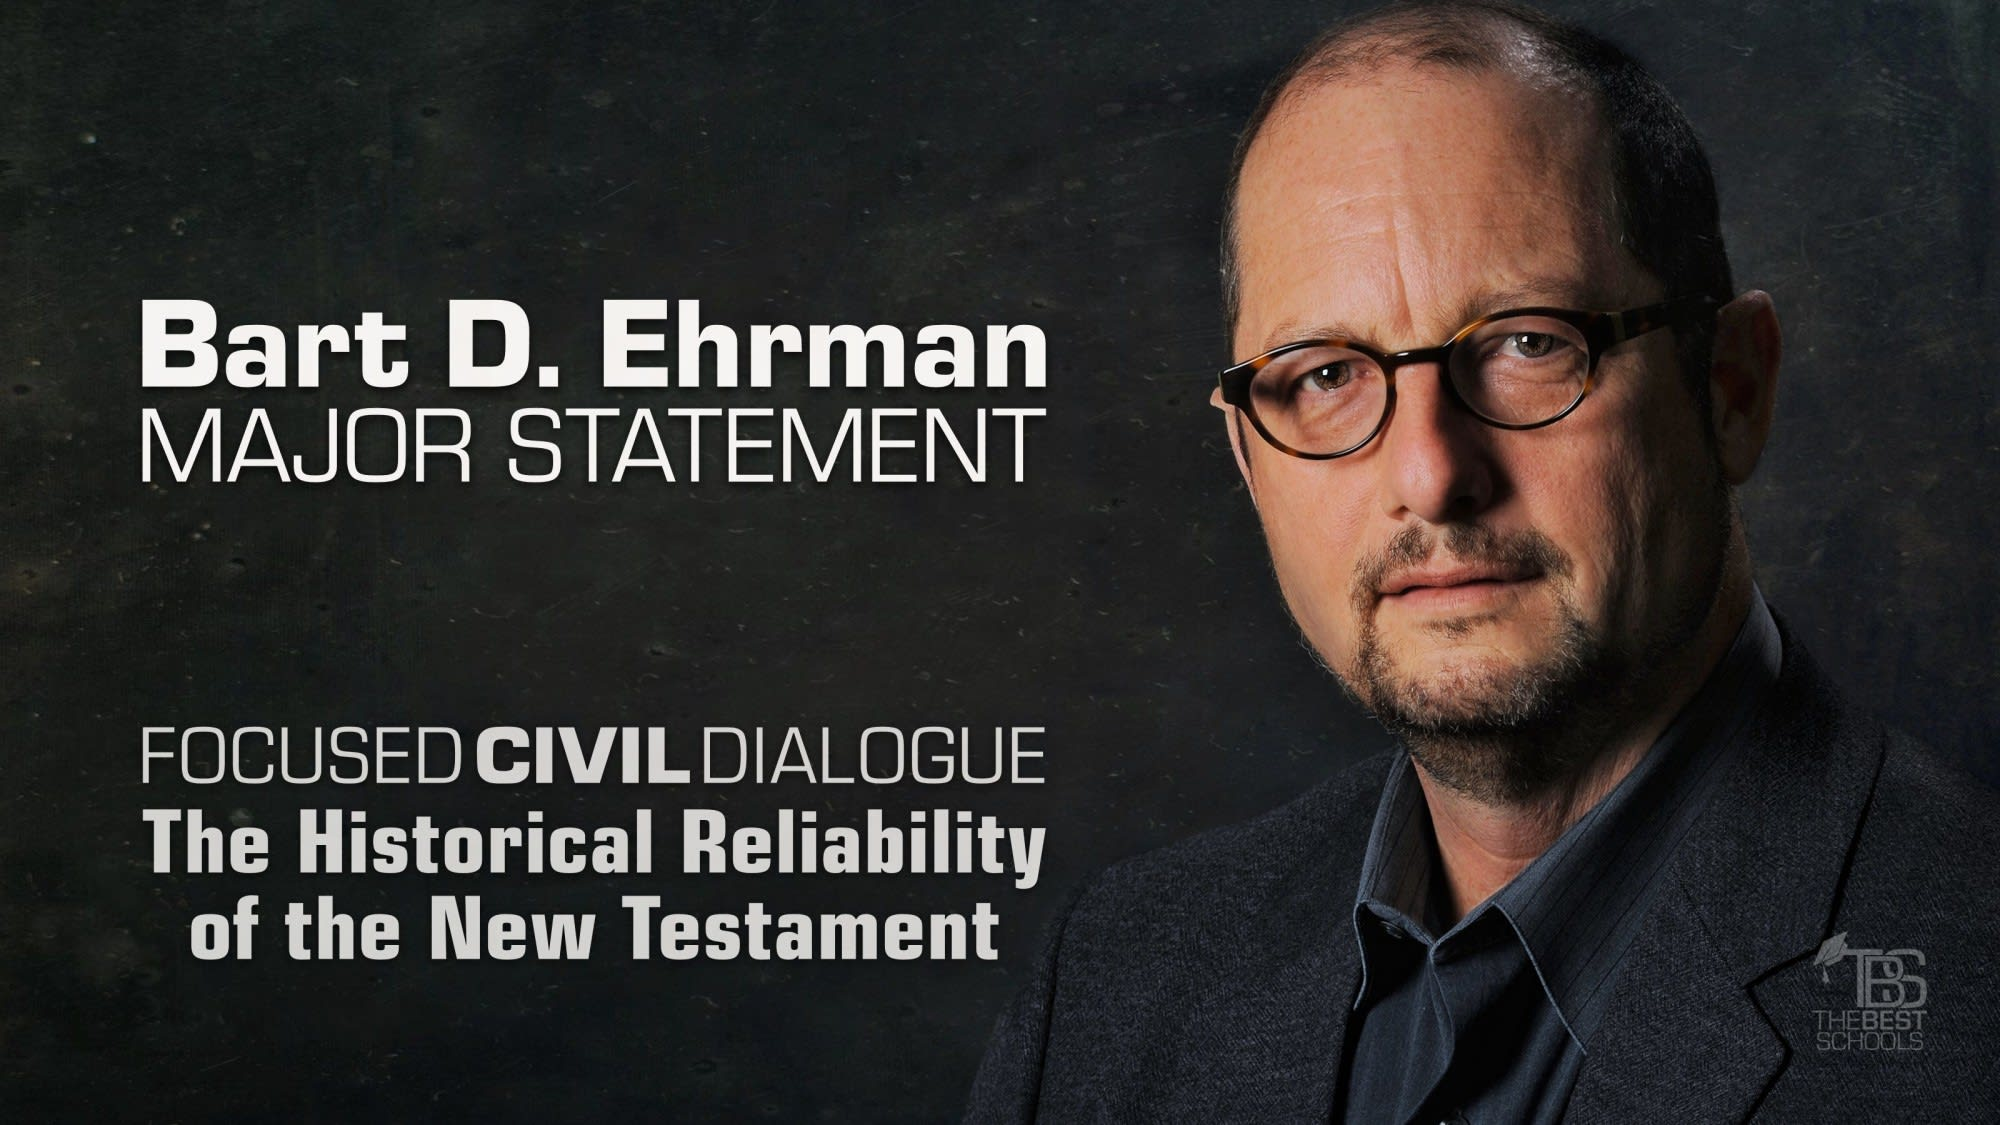 Ehrman's Statement: The New Testament Gospels Are